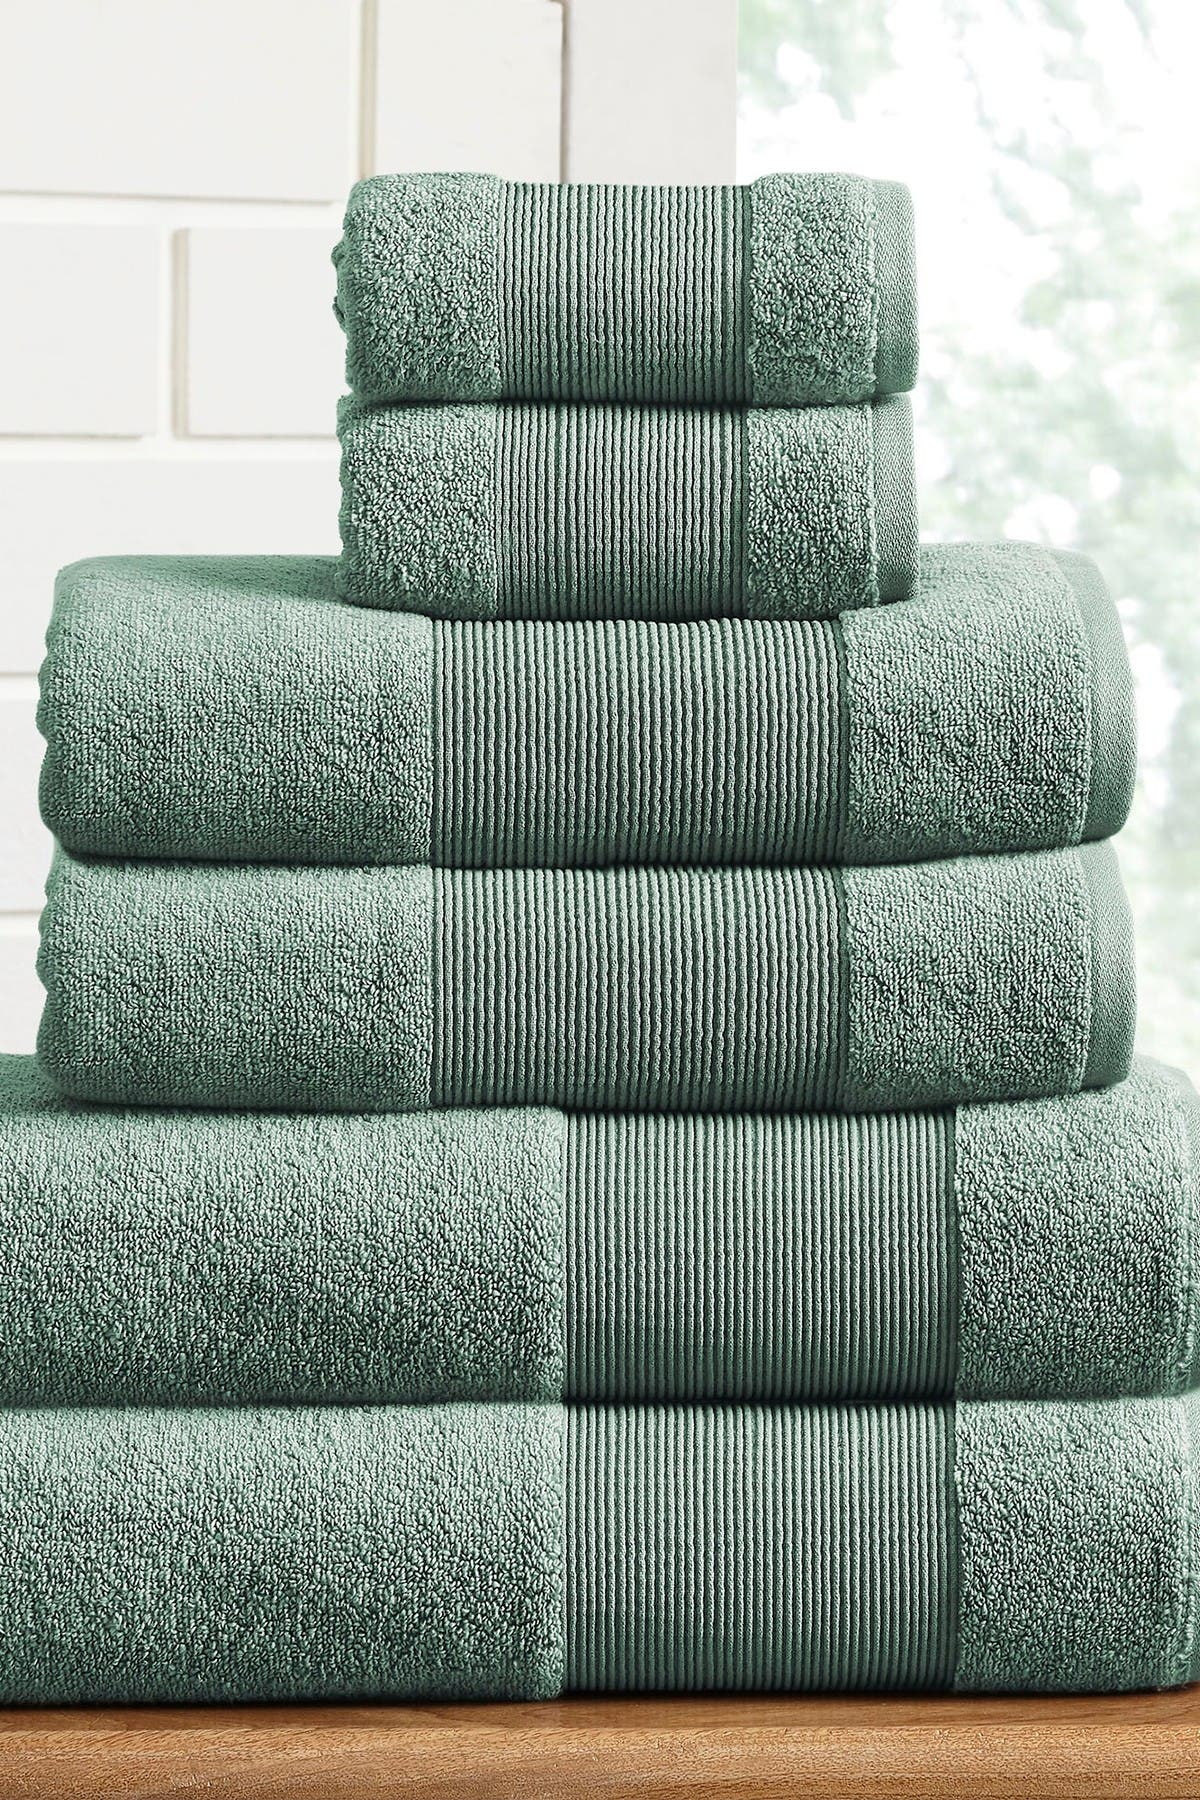 Image of Modern Threads Air Cloud 6-Piece Towel Set - Eucalyptus